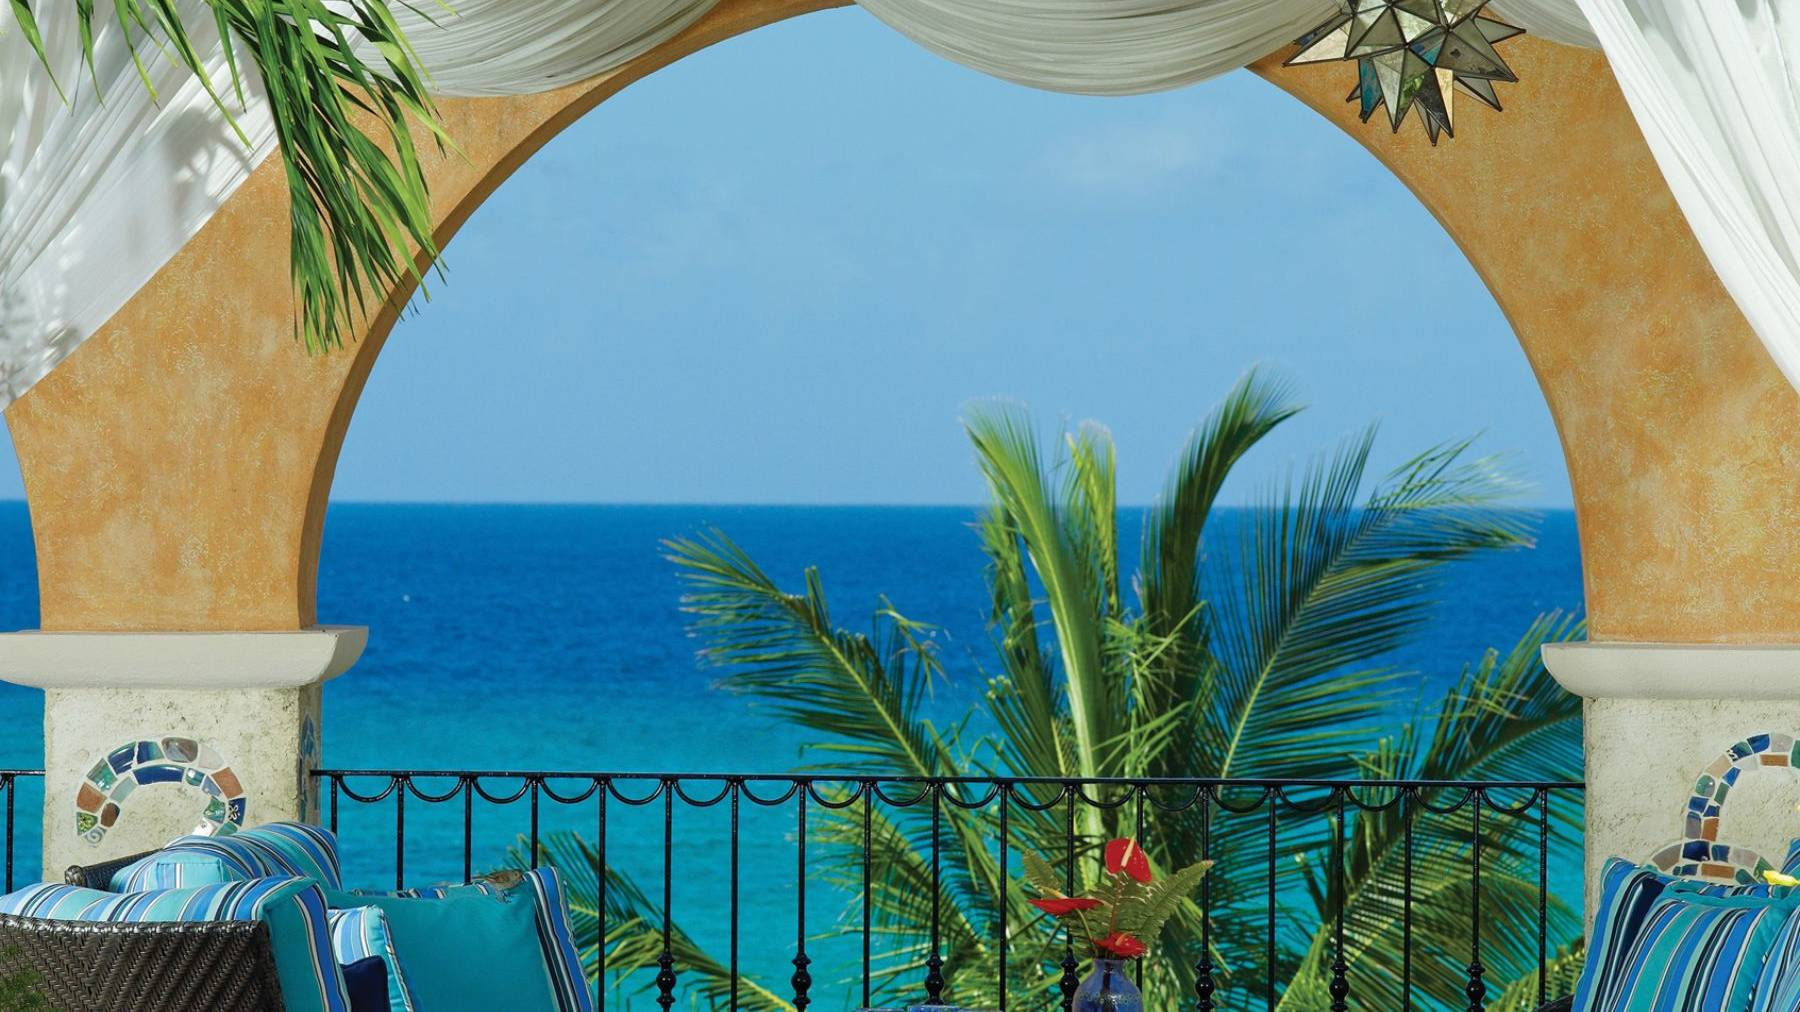 little-arches-boutique-hotel-barbados-images-34.jpeg